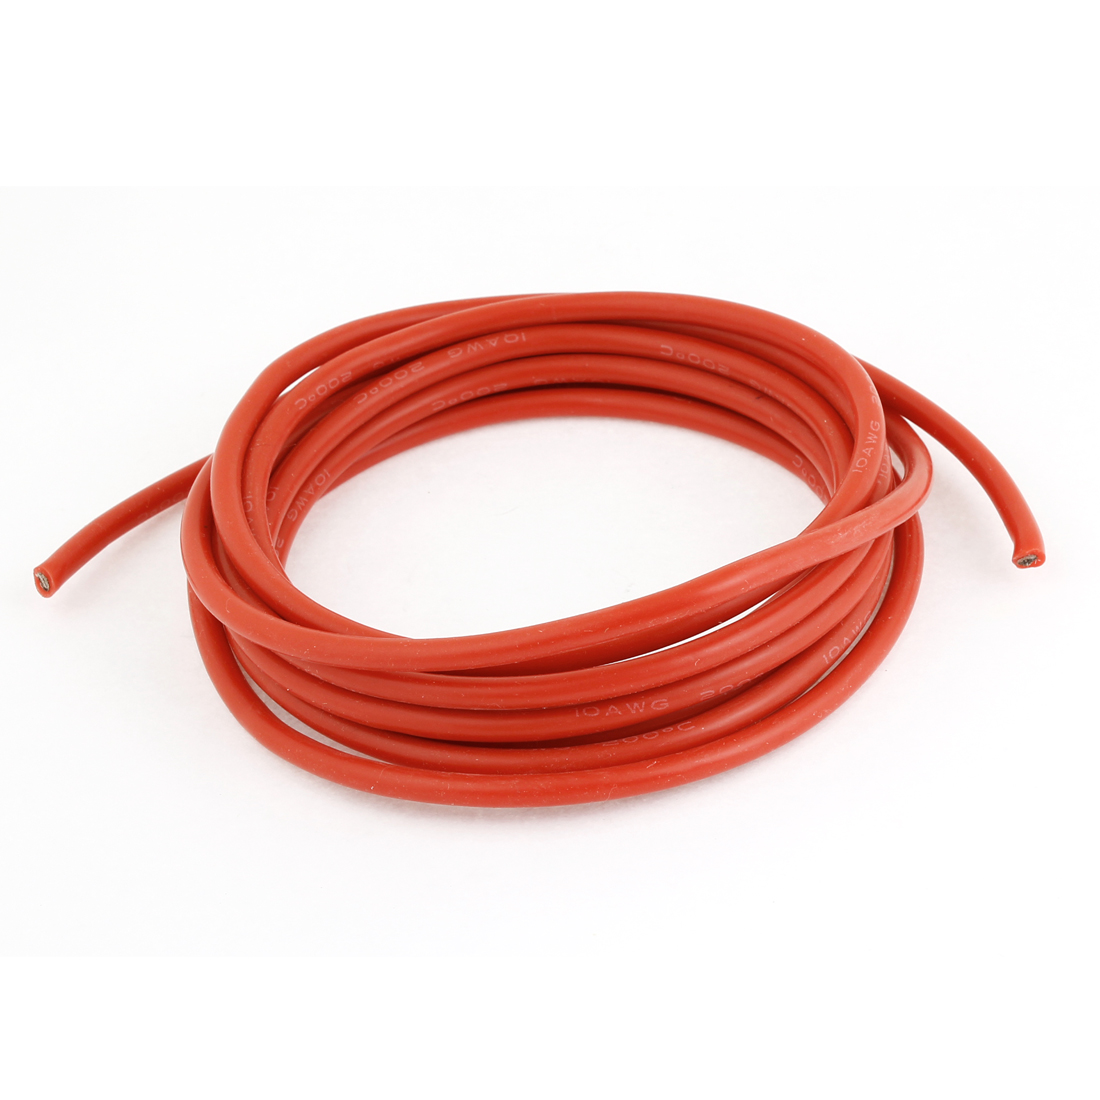 Spare Part 3 Meter 10AWG High Temperature Resistant Red Silicone Wires